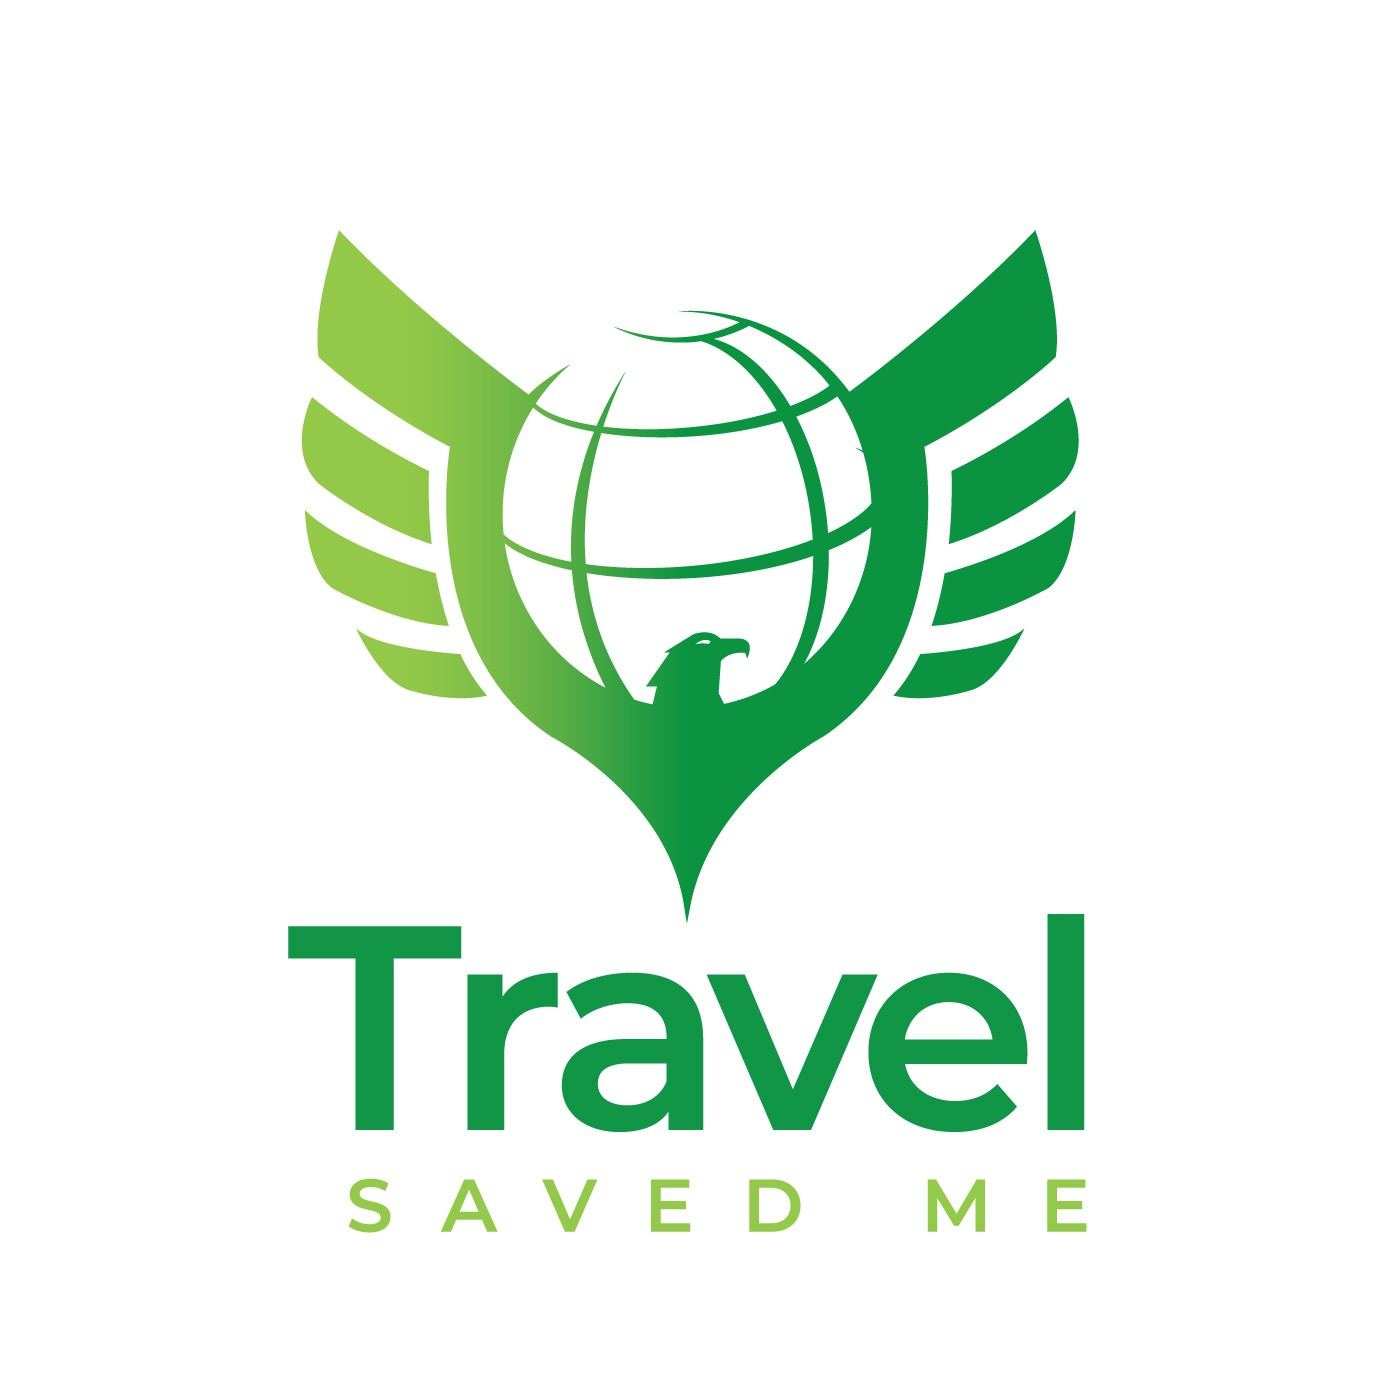 Crate a cool logo for a travel blog